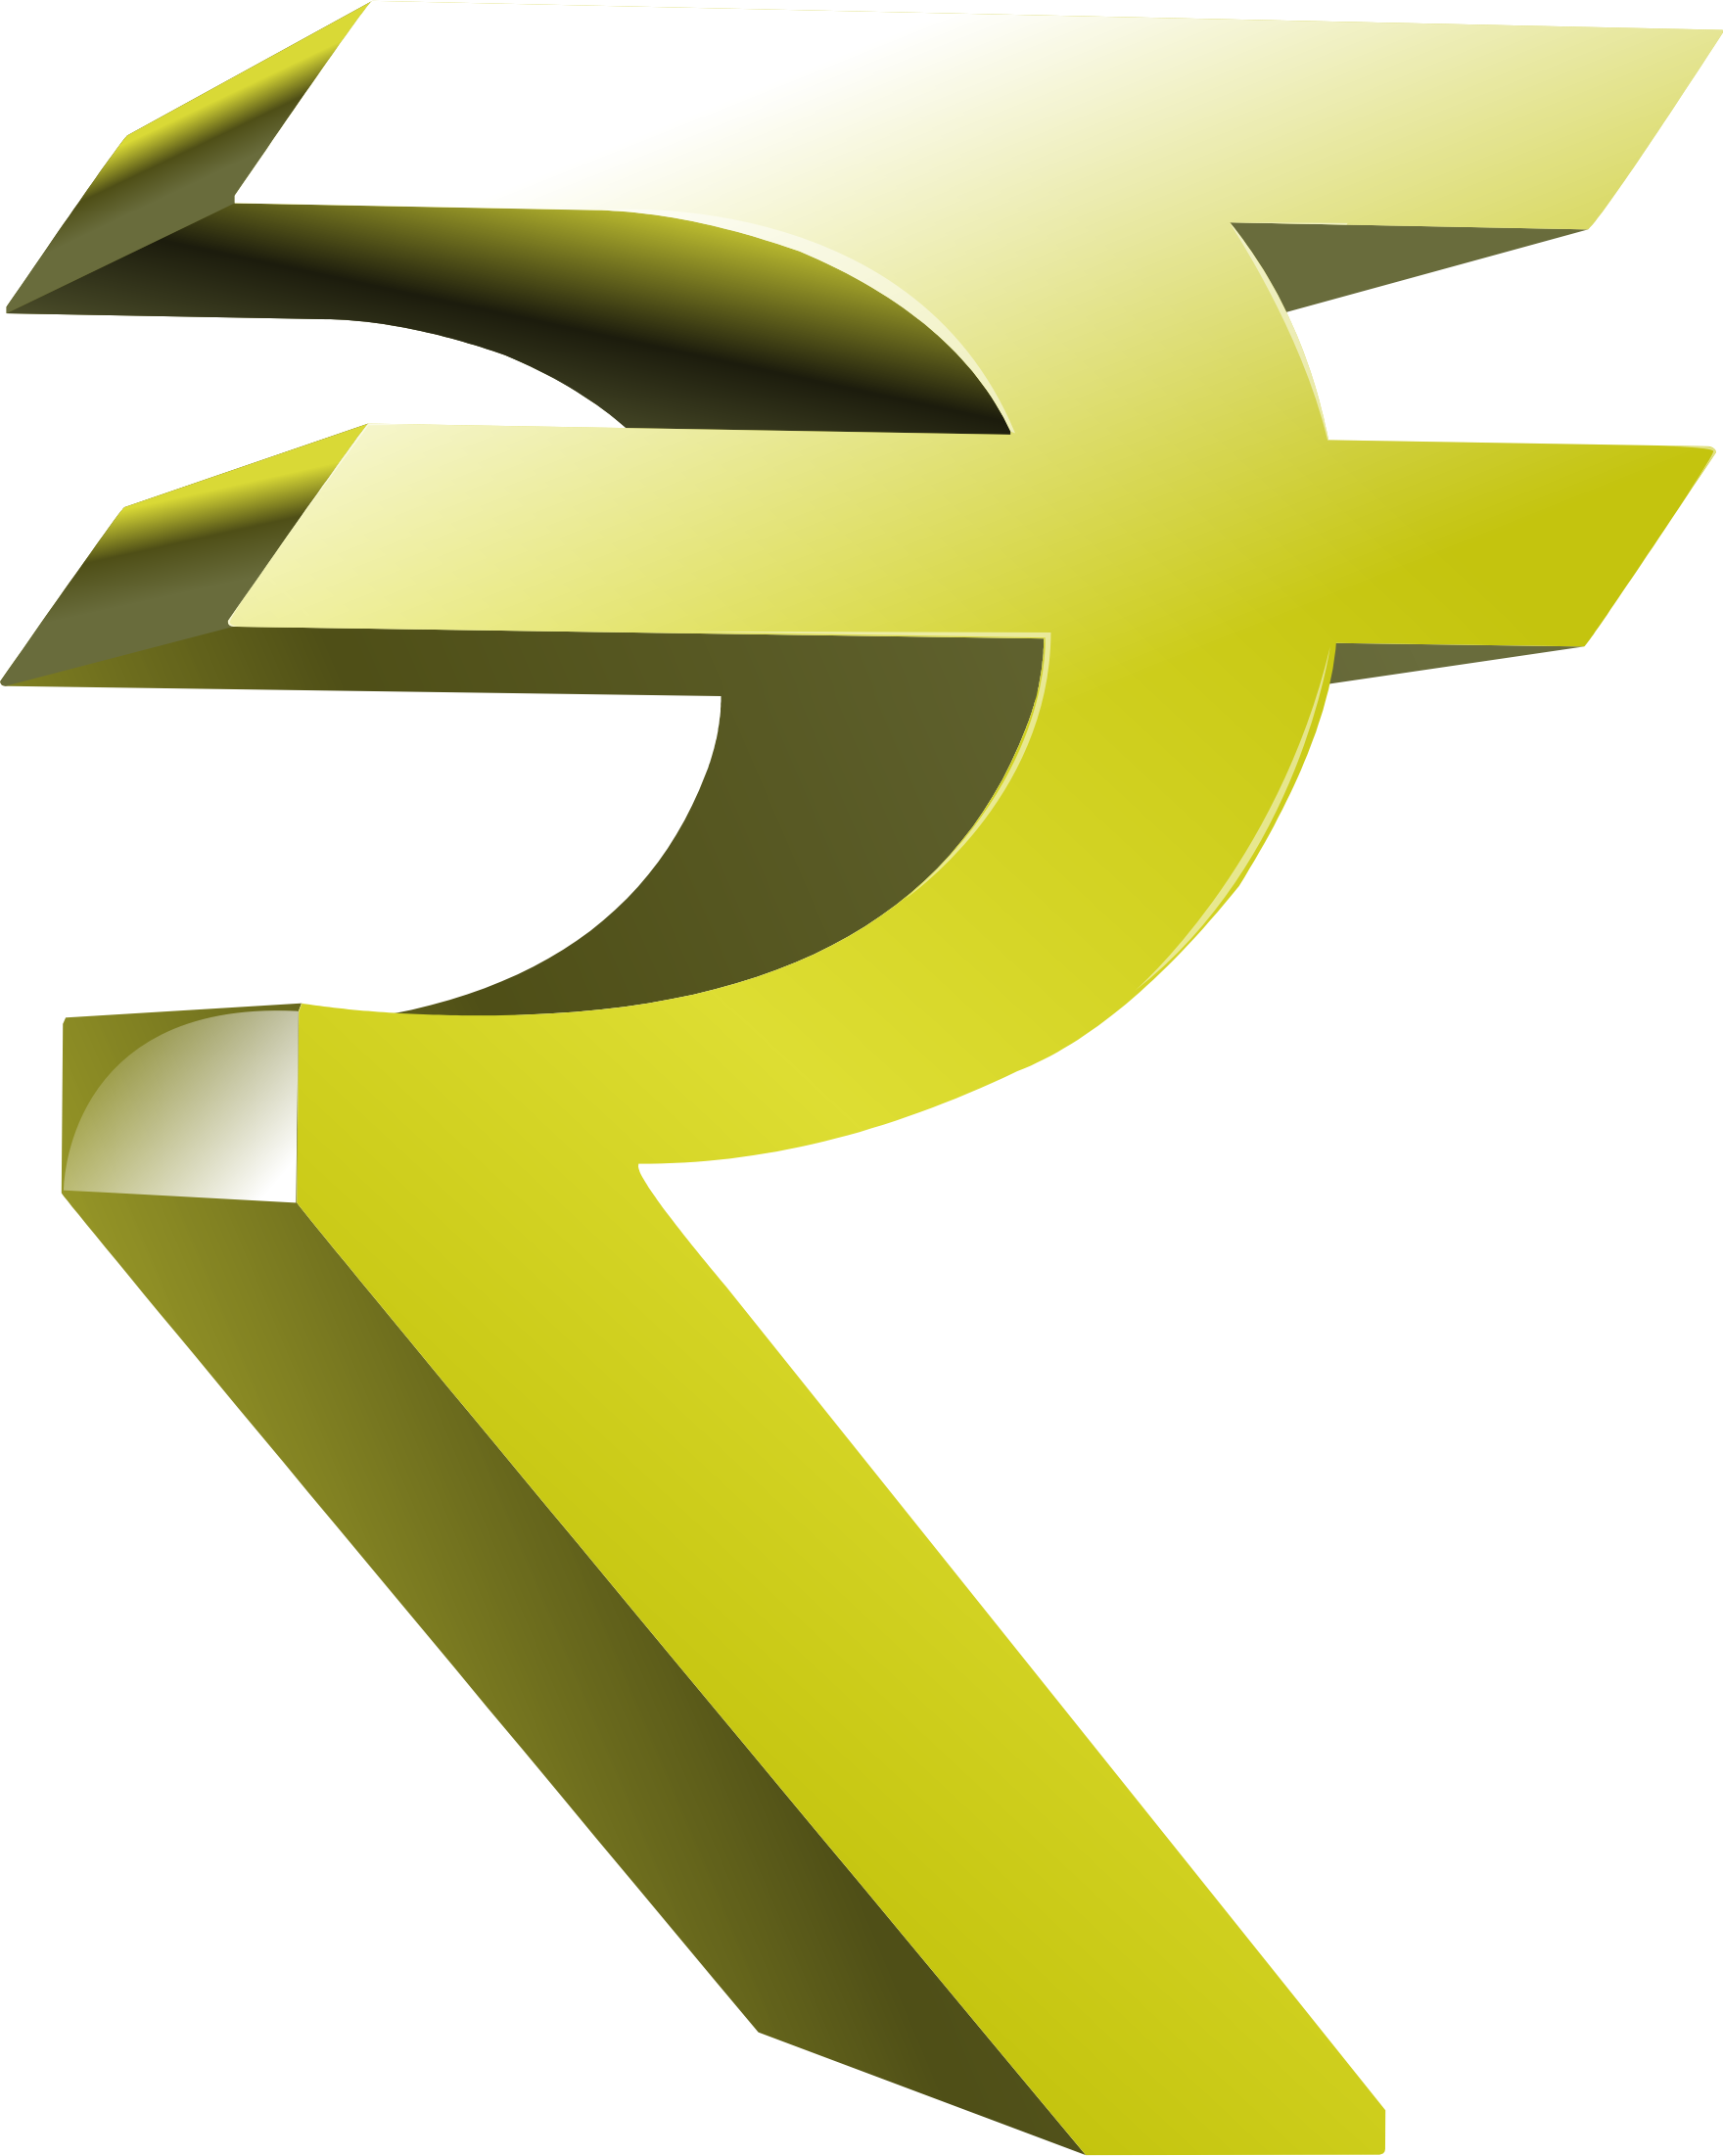 INDIAN RUPEE SYMBOL by westock